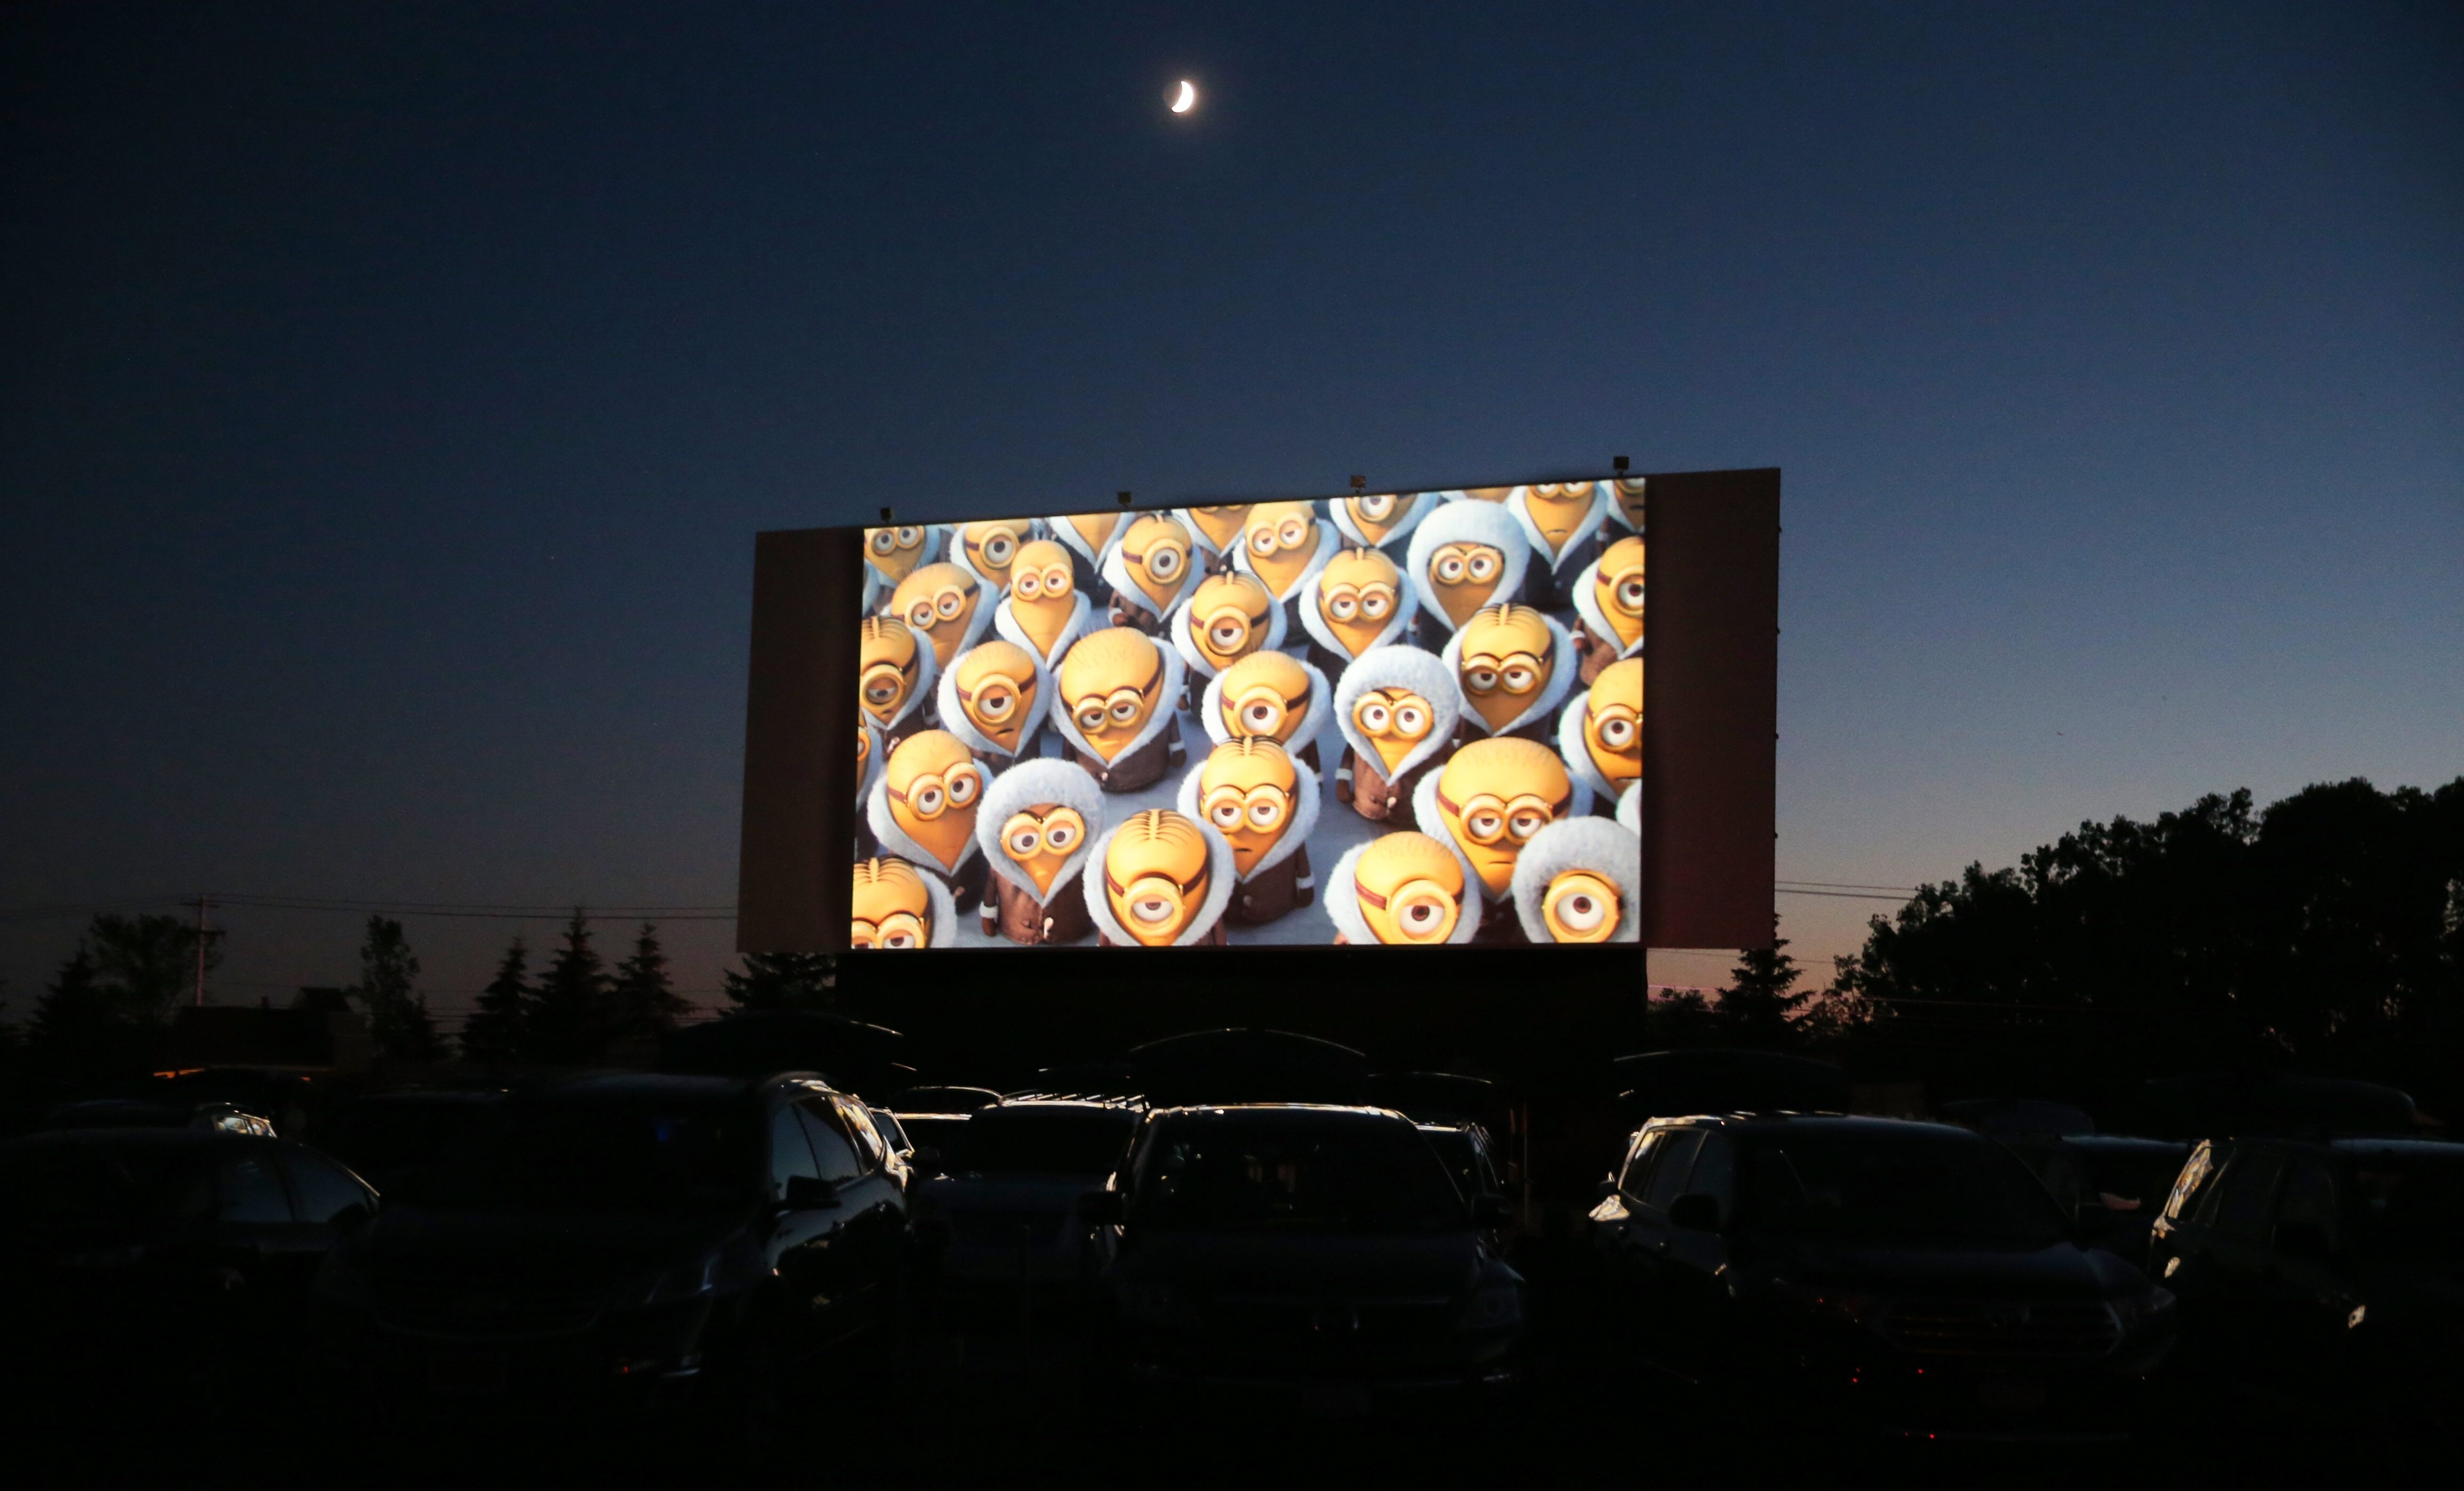 """Movie night: With three drive-ins to choose from, Western New Yorkers have a unique opportunity to pack up the car and catch a double feature. A recent trip to Lockport's Transit Drive-In found plenty of action on all four screens. 1.) The animated movie """"The Minions"""" was showing on the main screen. 2.) Samantha Ocejo, 9, of Niagara Falls, maneuvers her popcorn under the butter machine in the retro snack bar. 3.) Christina Birt, 14, stands at attention as the national anthem is played before the movie. 4.) Sitting next to their Trans-Am, two patrons settle in for the 1977 car chase classic """"Smokey and the Bandit,"""" which features Burt Reynolds driving a Trans-Am. 5.) Children ride the vintage merry-go-round before the movie. Randall Shortridge, who was at the drive-in with his family, said the ride appears to be the same one he rode as a child. 6.) The neon sign lists the night's lineup. 7.) Crystan Soule and Marc Ducharme of North Tonawanda wait in line for snacks at the Starlite snack bar, named after an old Town of Niagara drive in. 8.) Ann Marie Simmon, left and Audrey Ash relax in lawn chairs to enjoy """"Smokey,"""" Ash's favorite movie."""